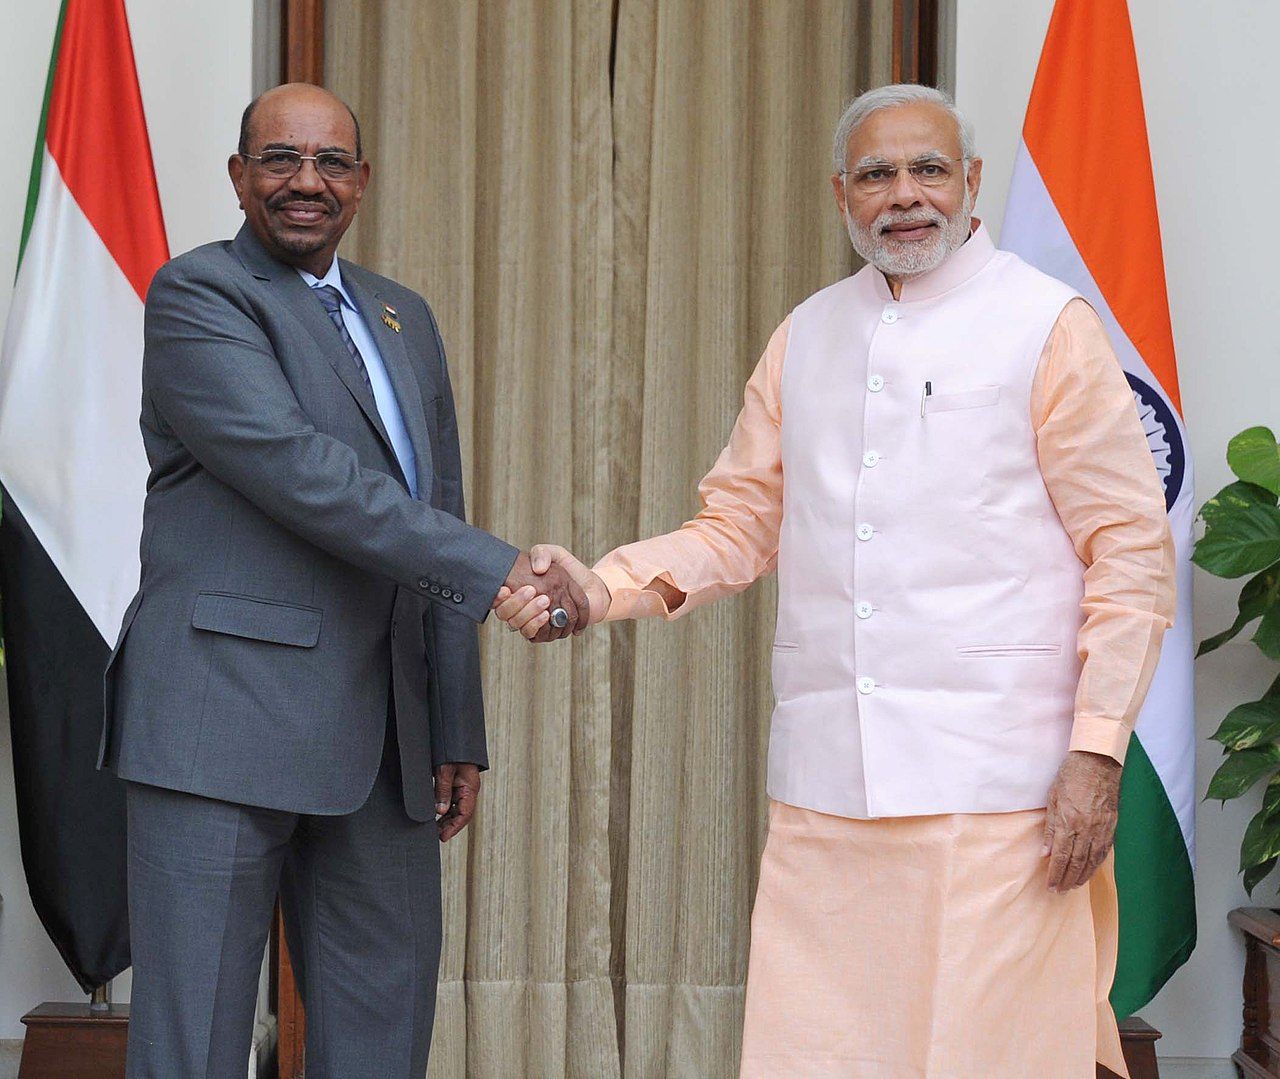 The Prime Minister, Shri Narendra Modi meeting the President of Sudan, Mr. Omar al-Bashir, in New Delhi on October 30, 2015.jpg